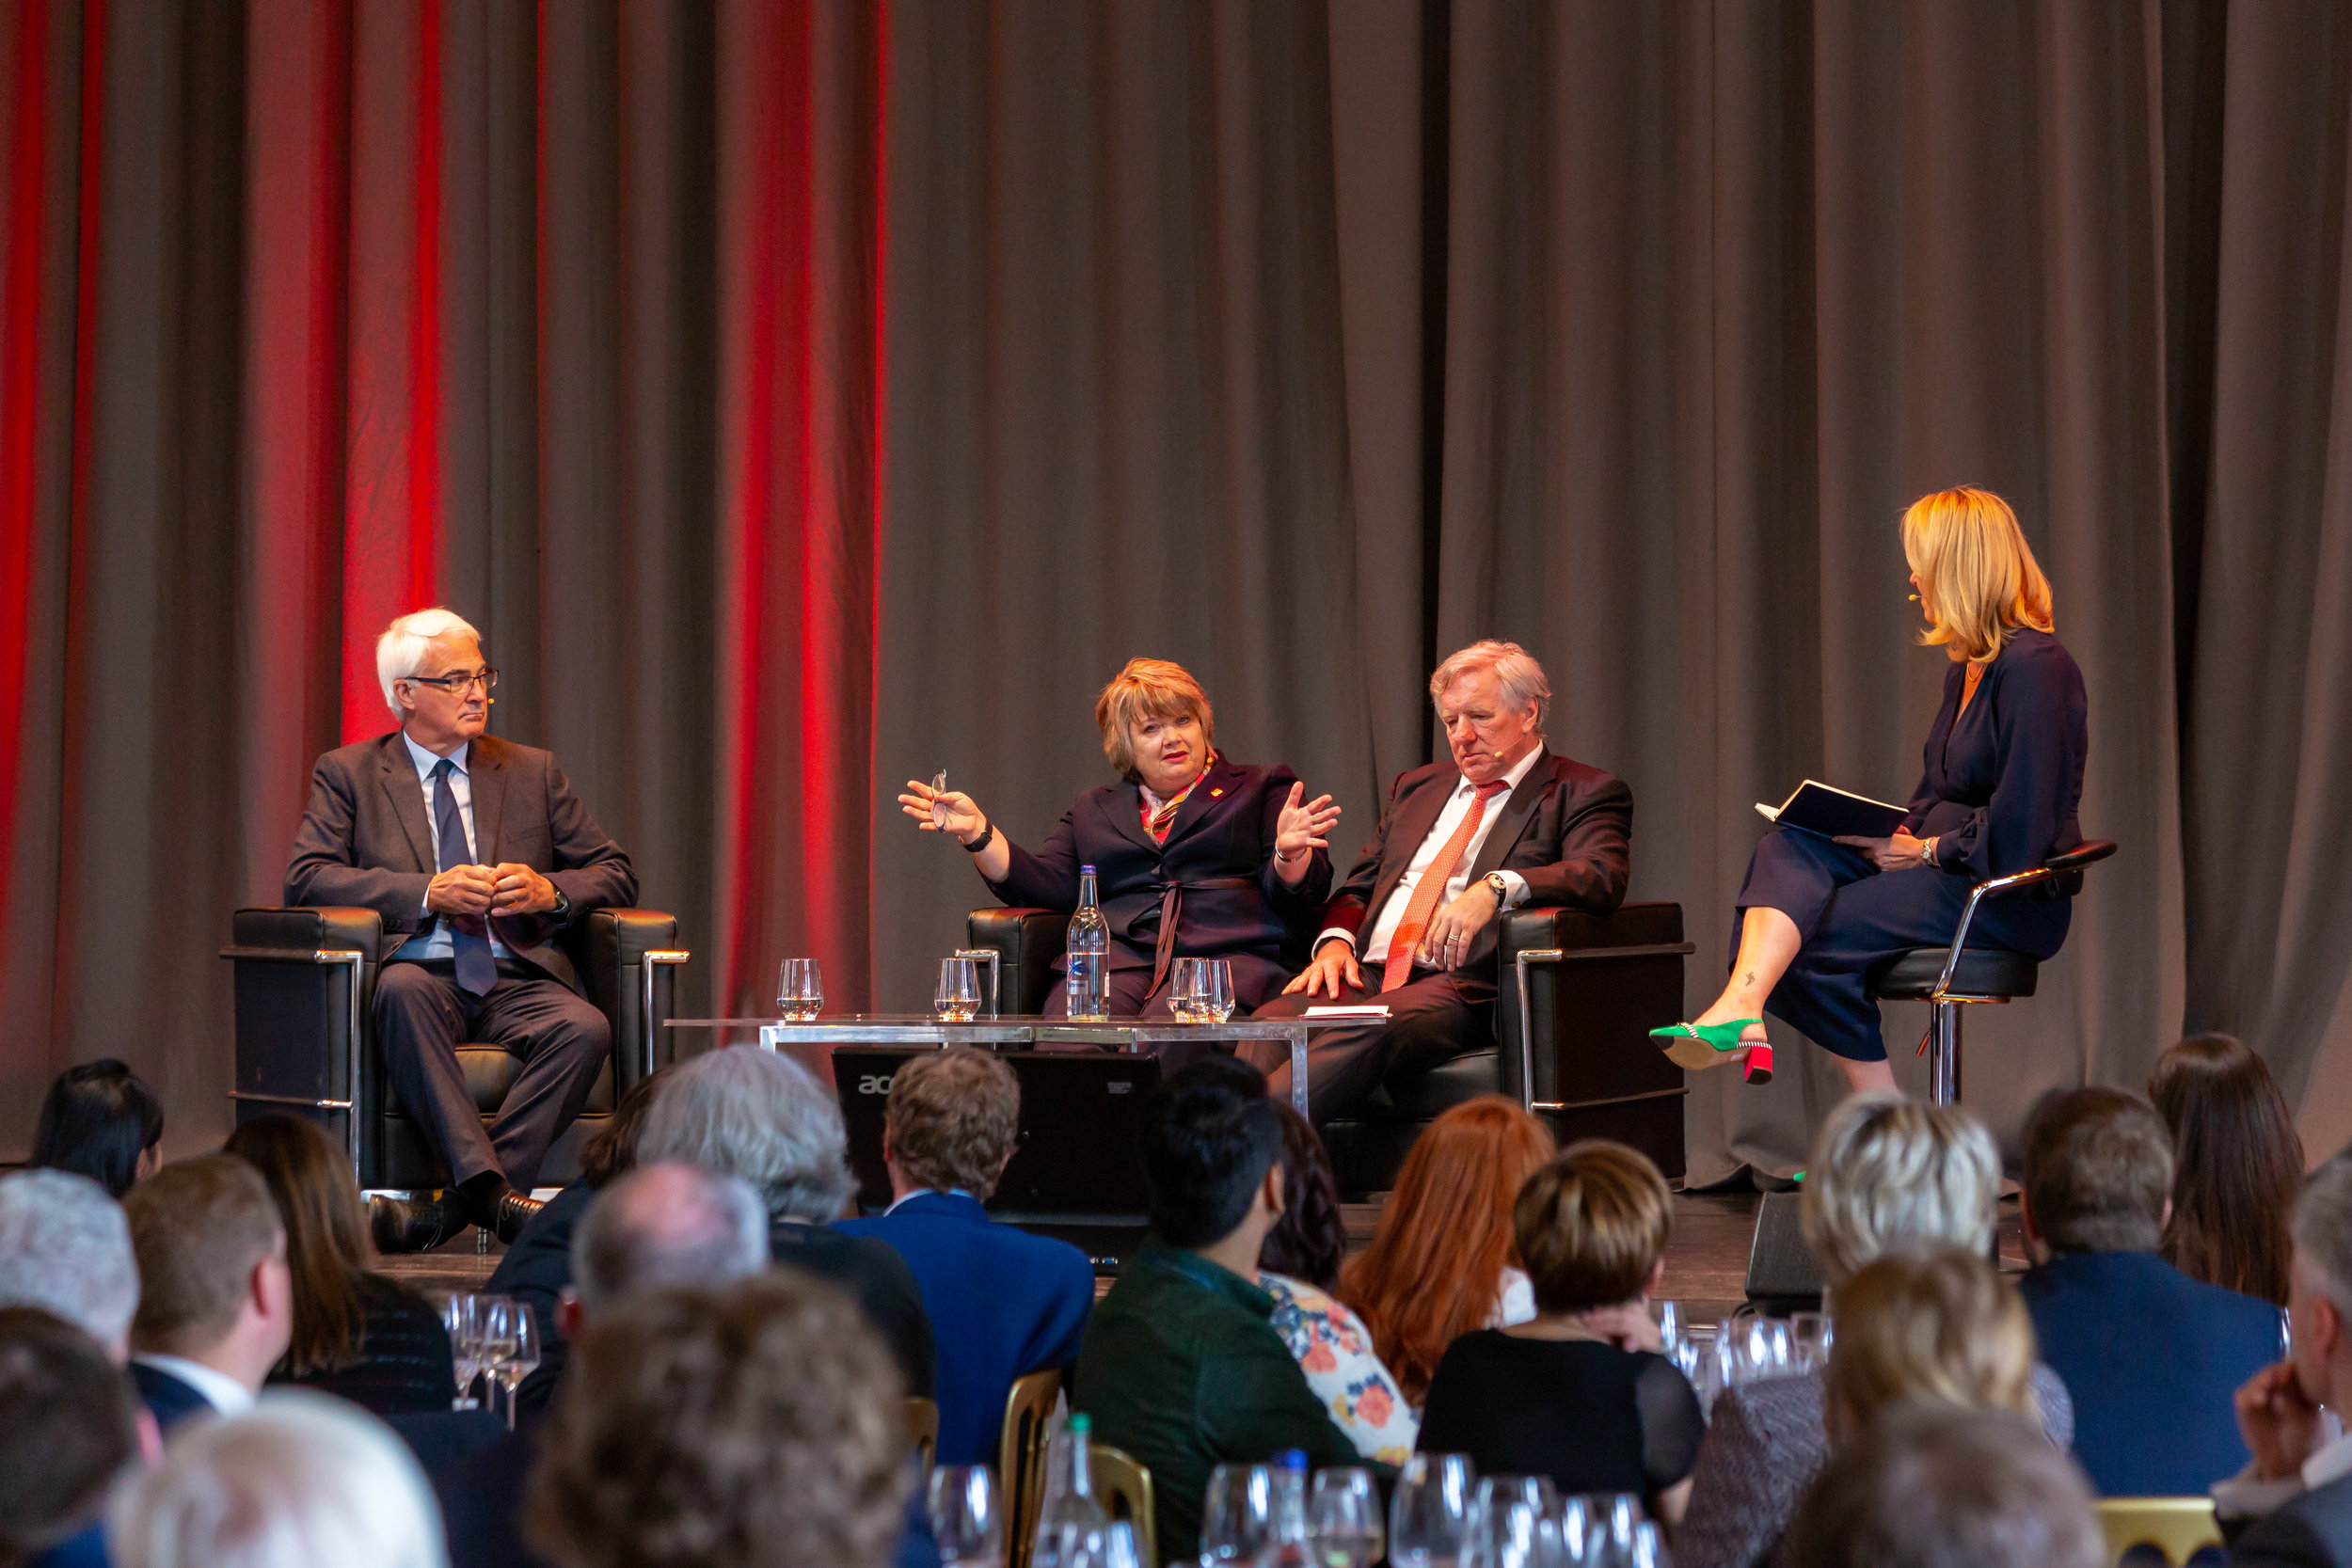 The Prince's Trust Scotland Business Lunch 2019-5.jpg